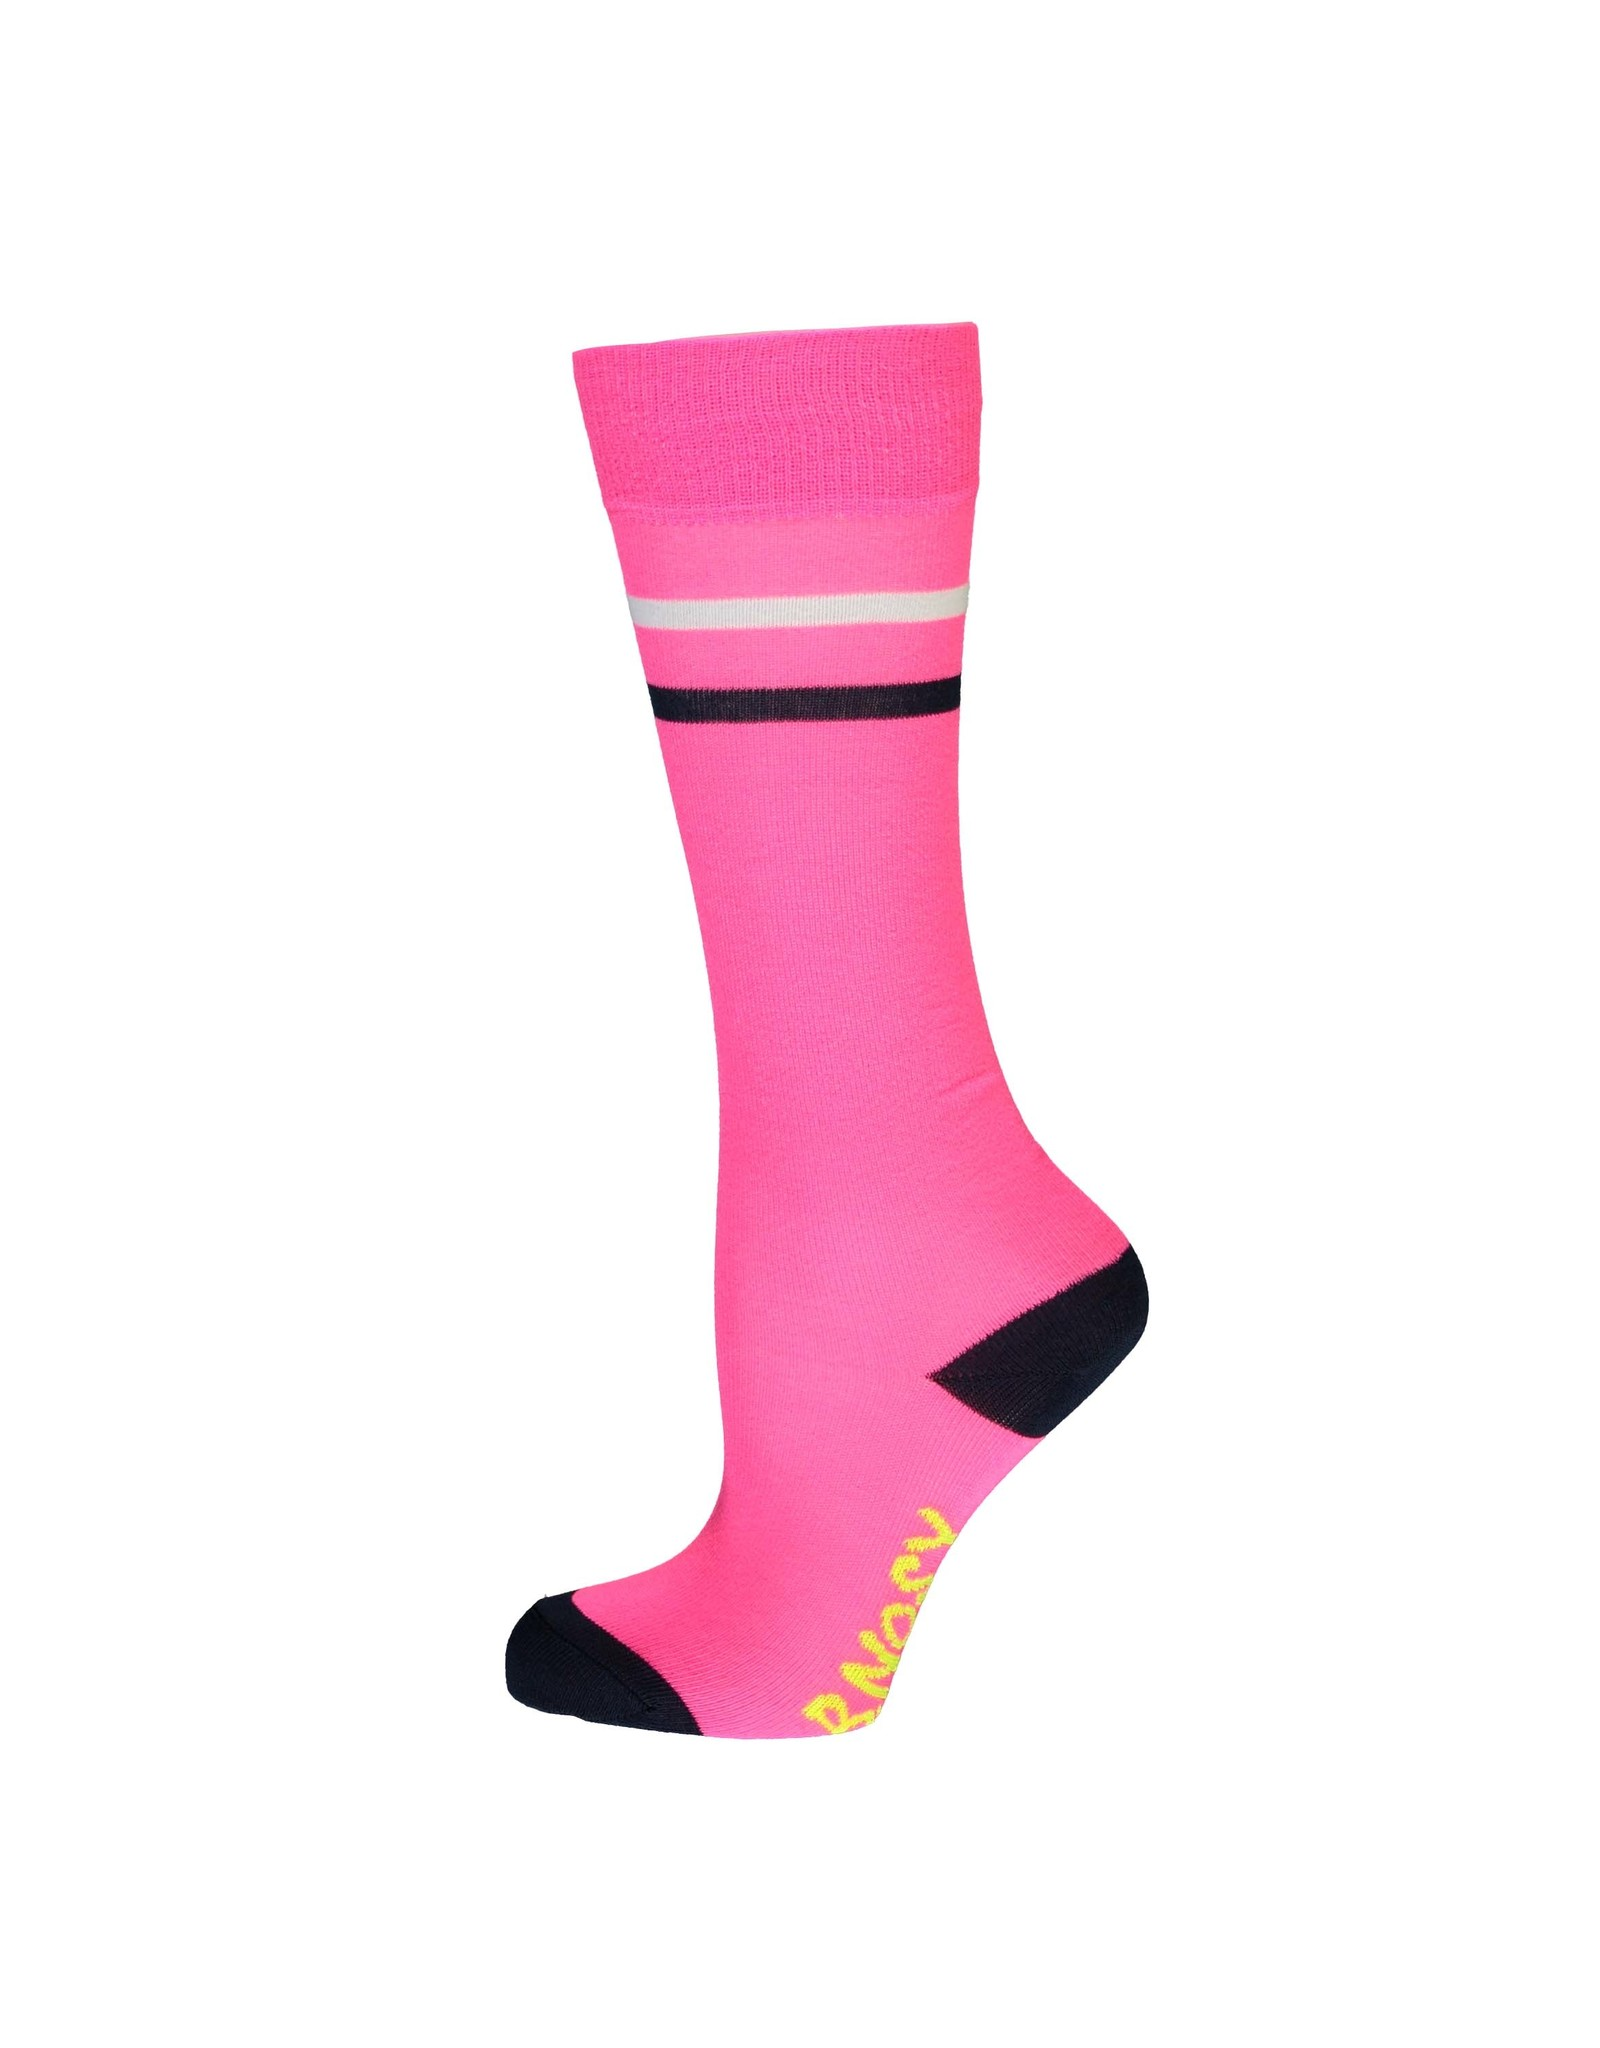 B-Nosy Girls basic socks with contrast stripes, Knock out pink